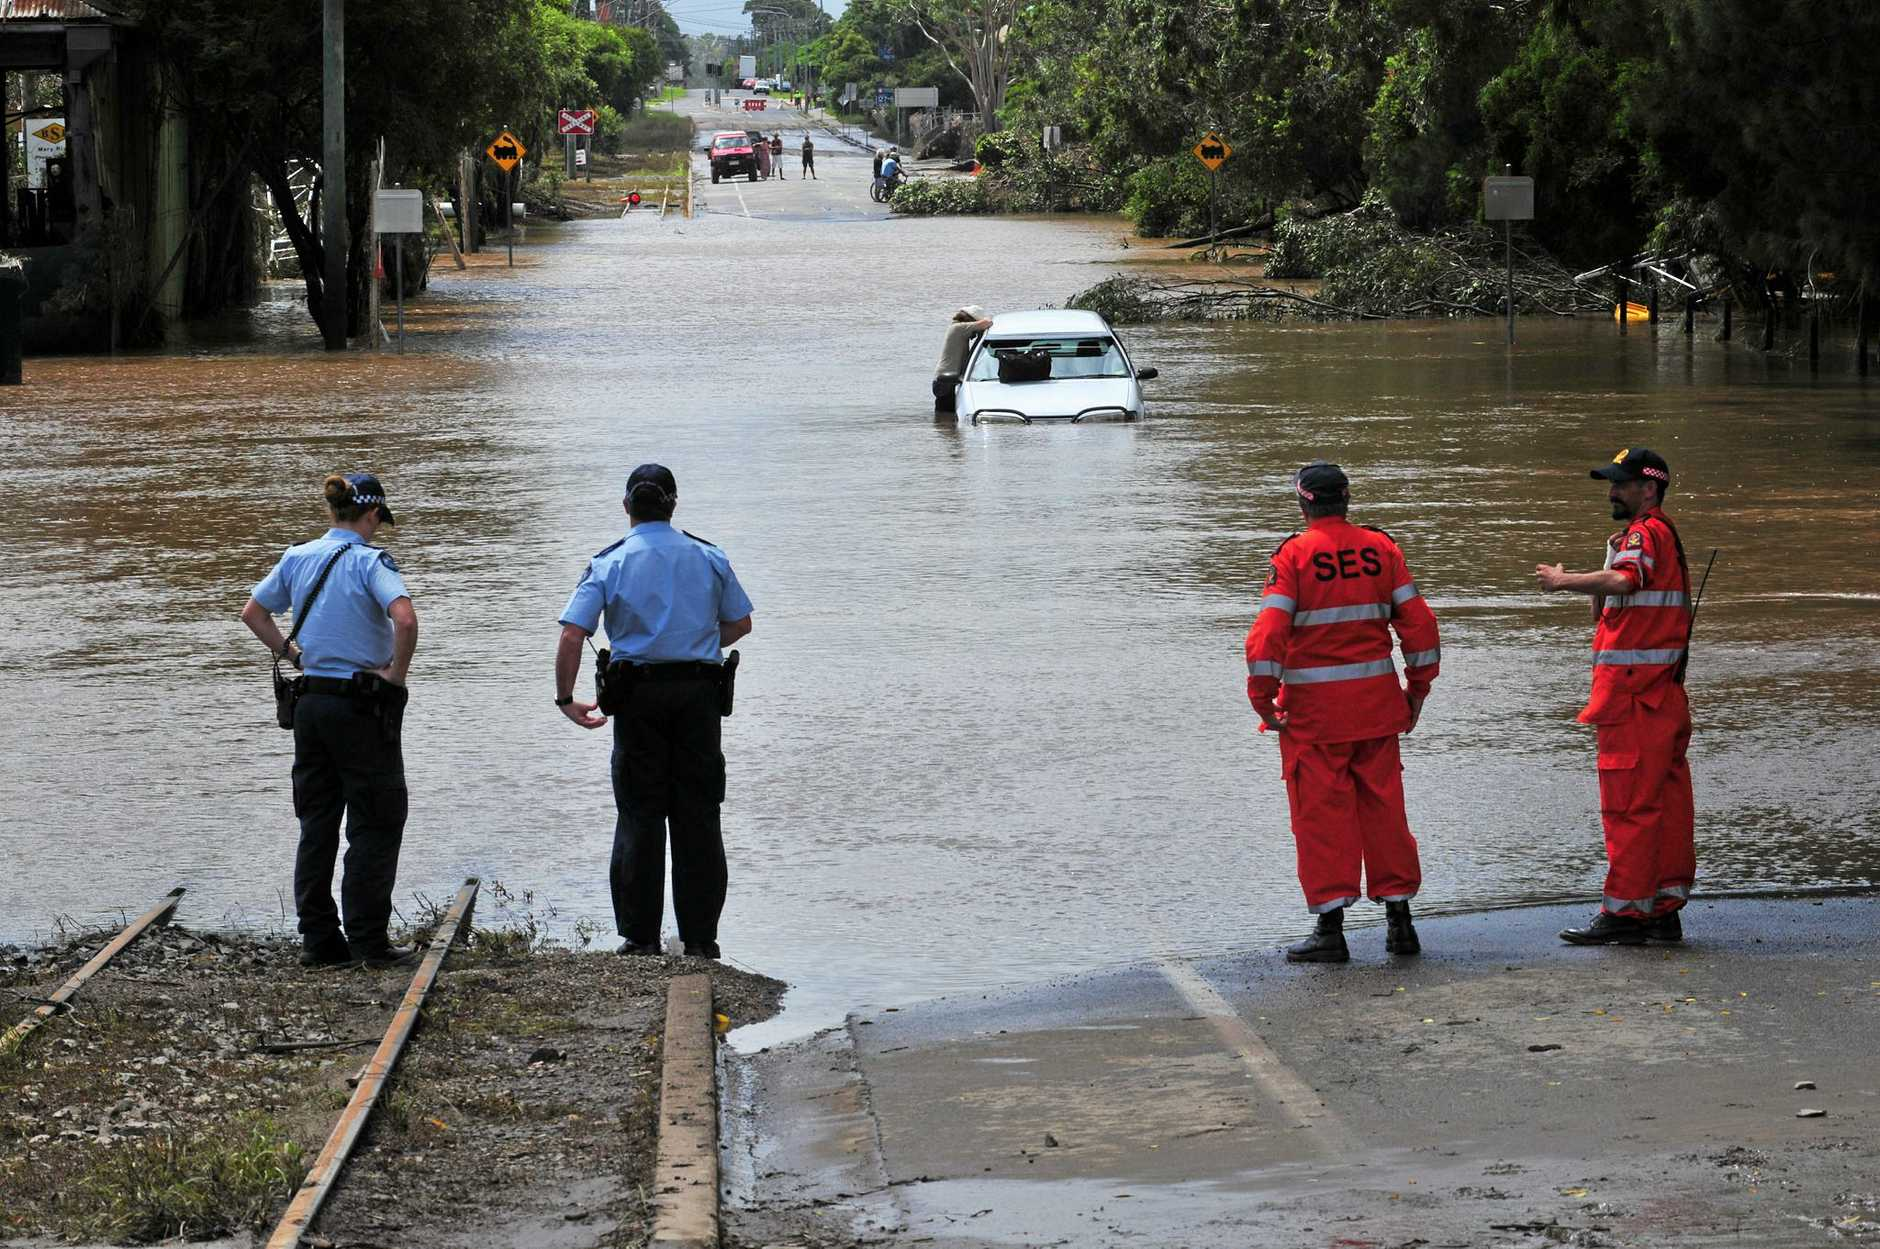 Police and SES stand watch over a motorist who's vehicle stalled in flood waters on Kent Street, Maryborough yesterday.      Photo: Nat Bromhead / Fraser Coast Chronicle